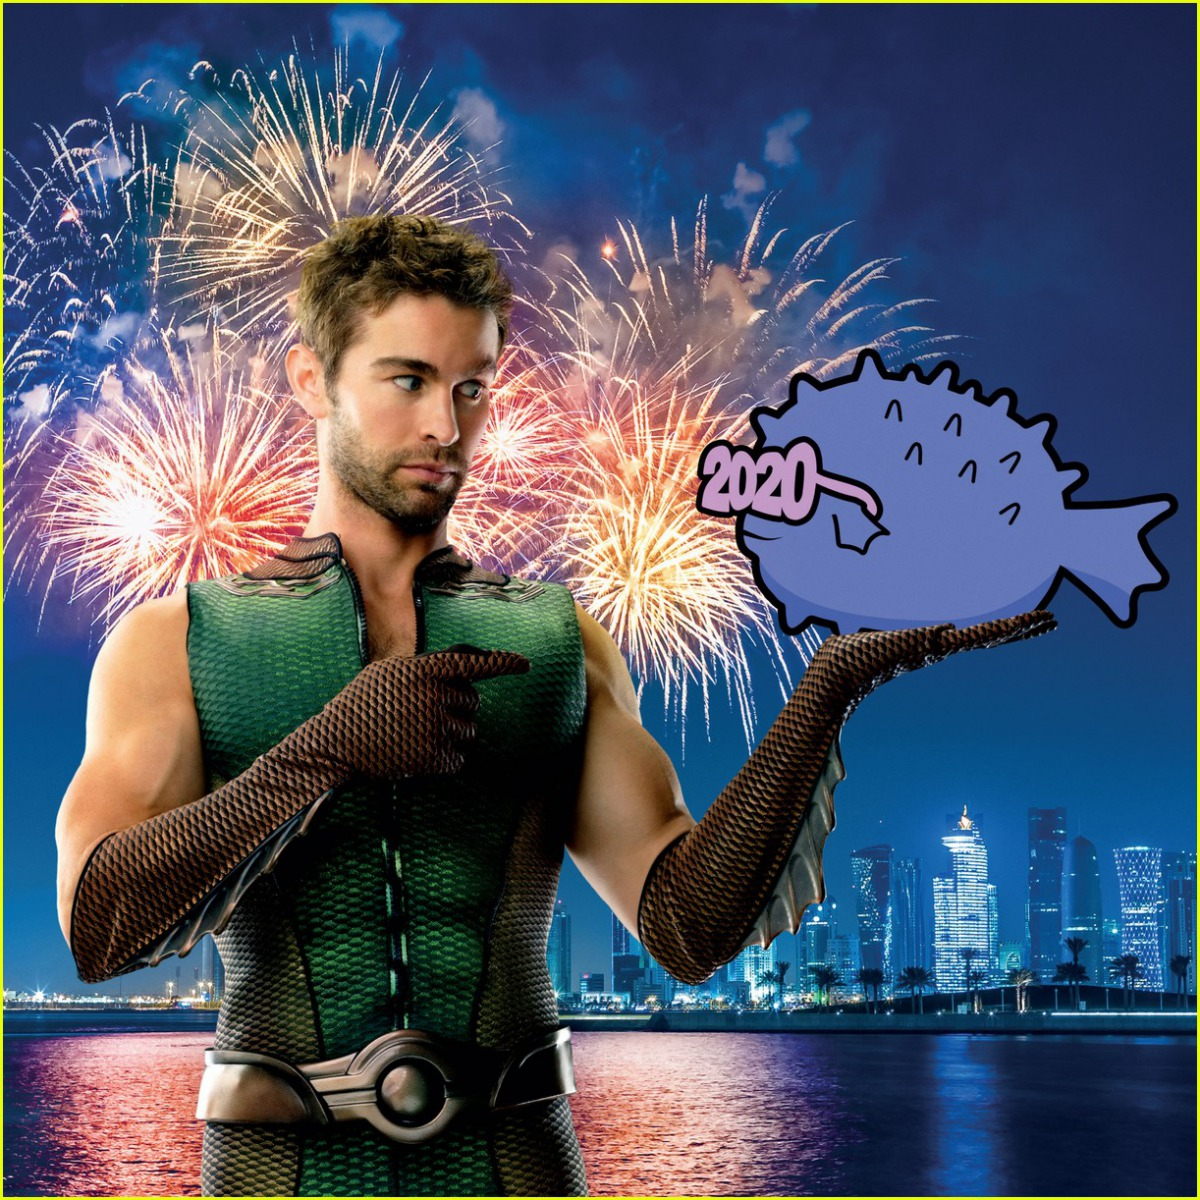 The Deep Calendar - January 2020 (featuring Chace Crawford from The Boys)